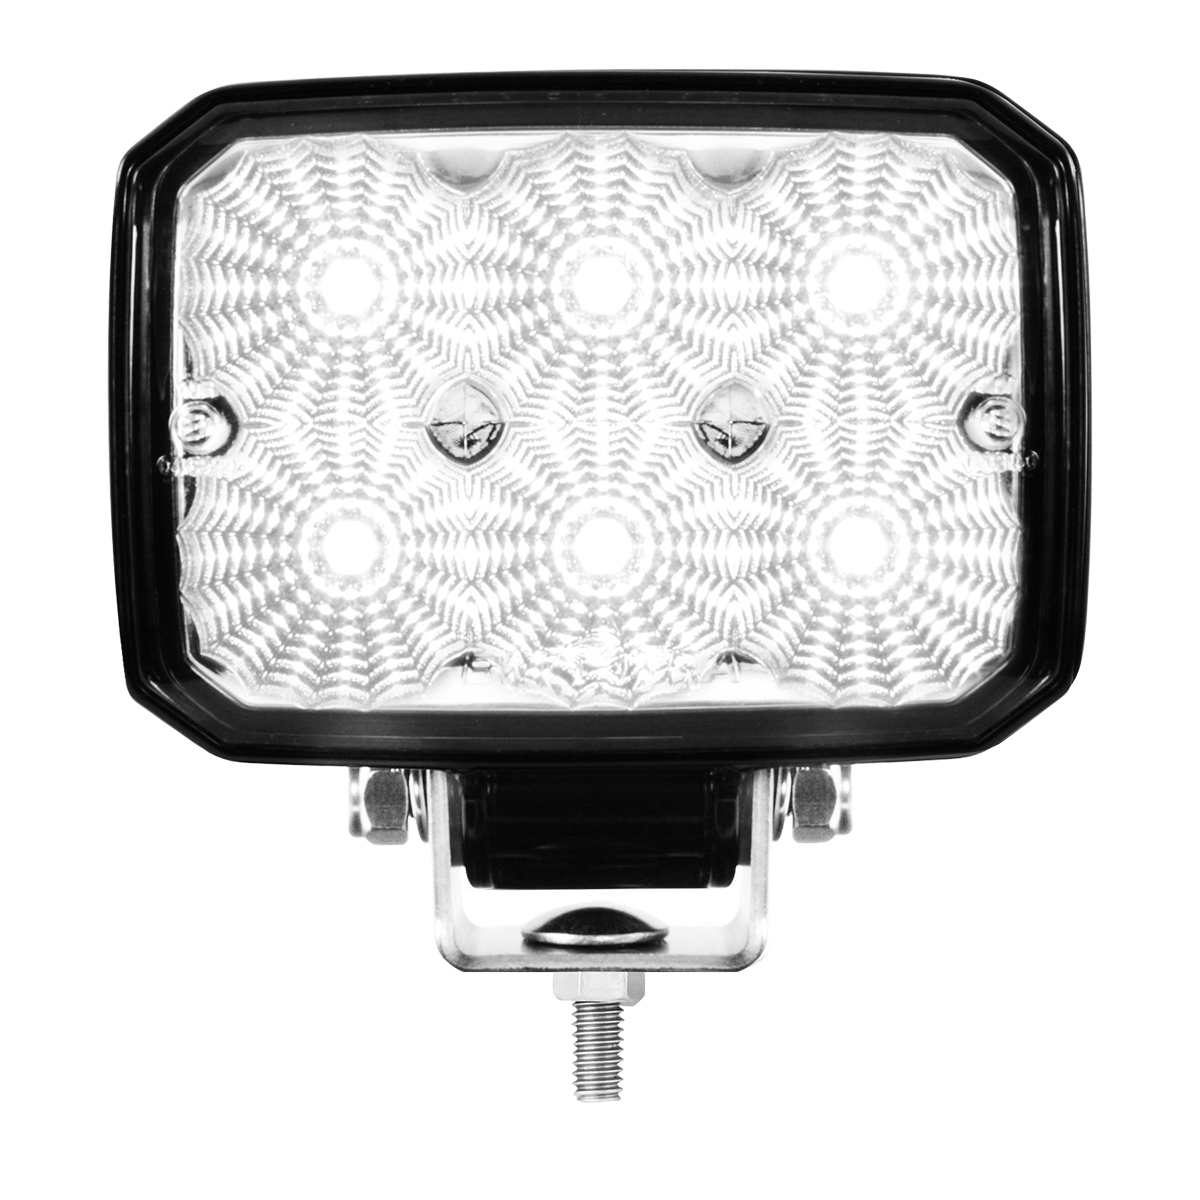 76360 Medium High Power LED Work Light